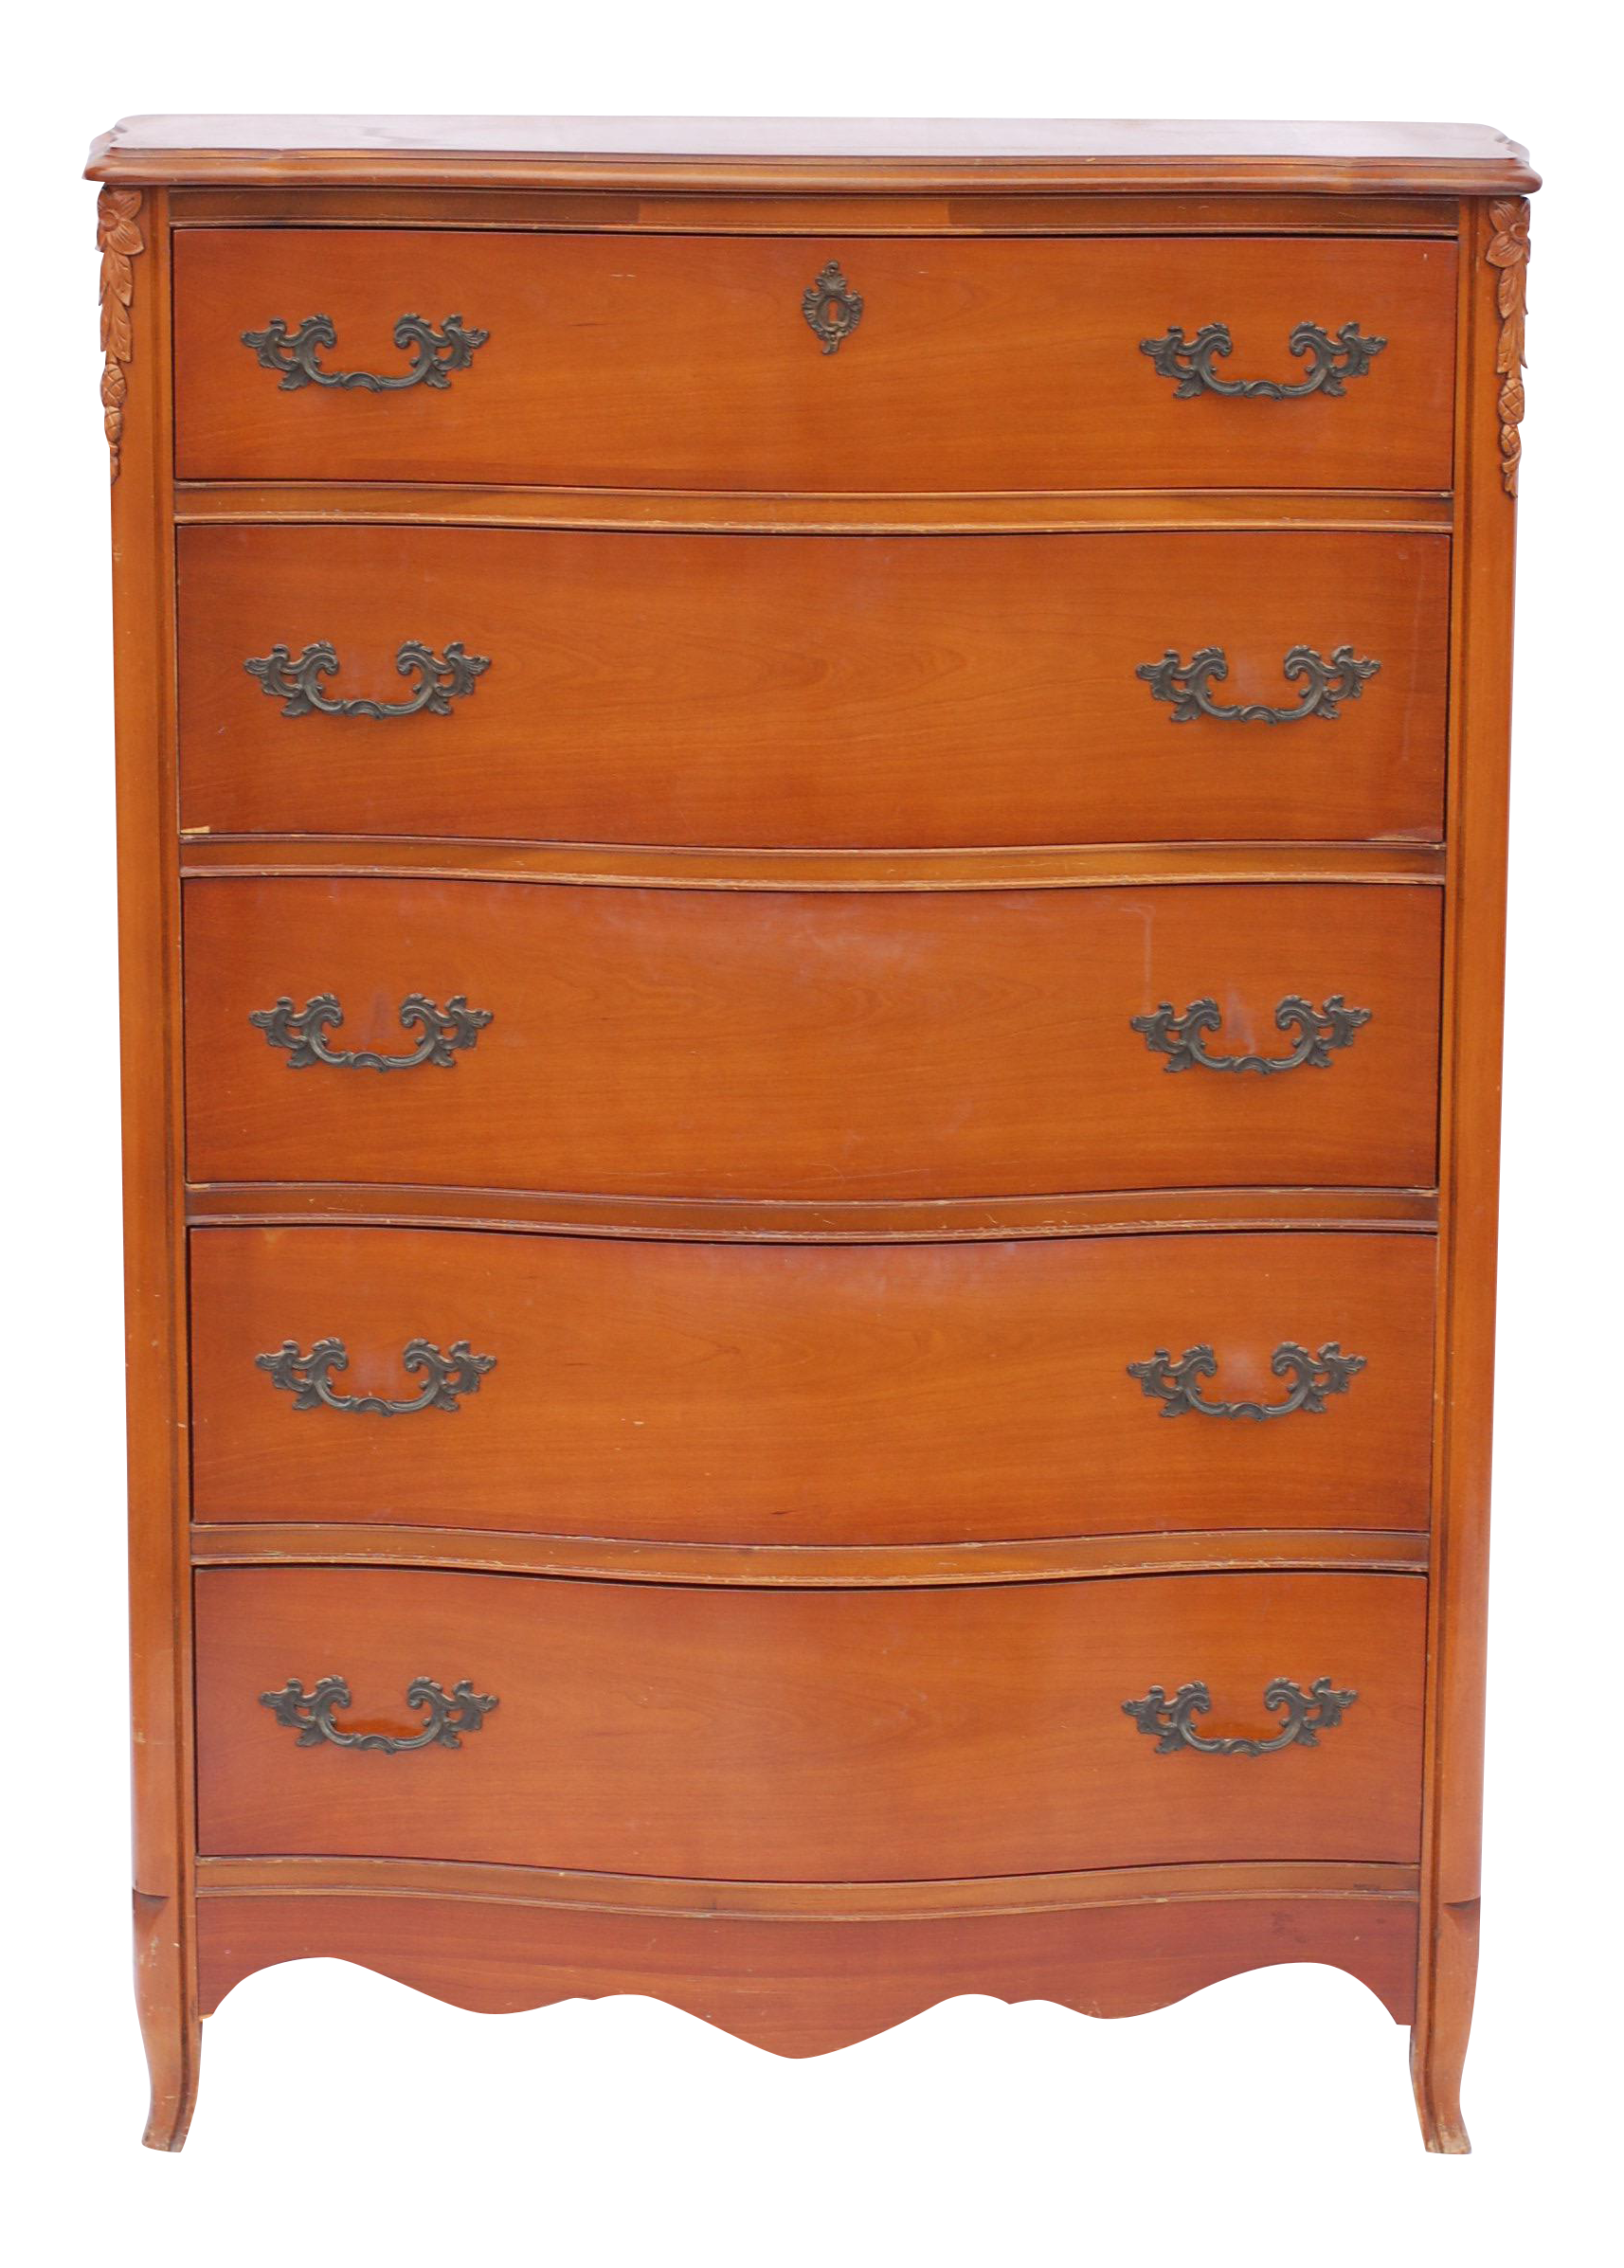 Bassett furniture antique french provincial dresser chairish